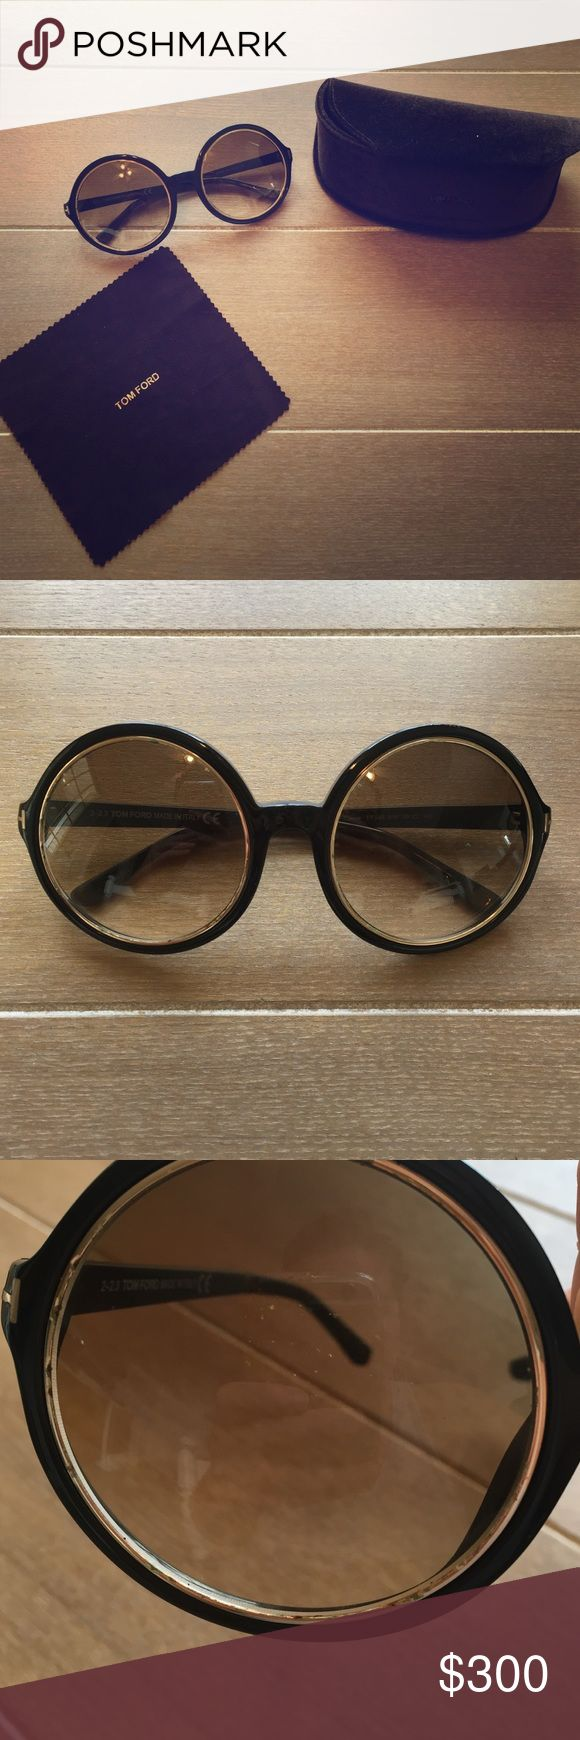 SALE Tom Ford Round Sunglasses Authentic Tom Ford sunglasses. Includes original case and cleaning cloth. great condition, although there is some slight damage on the lenses as shown in the pictures. If you are a sunglasses lover, these are a must have! Accessories Sunglasses